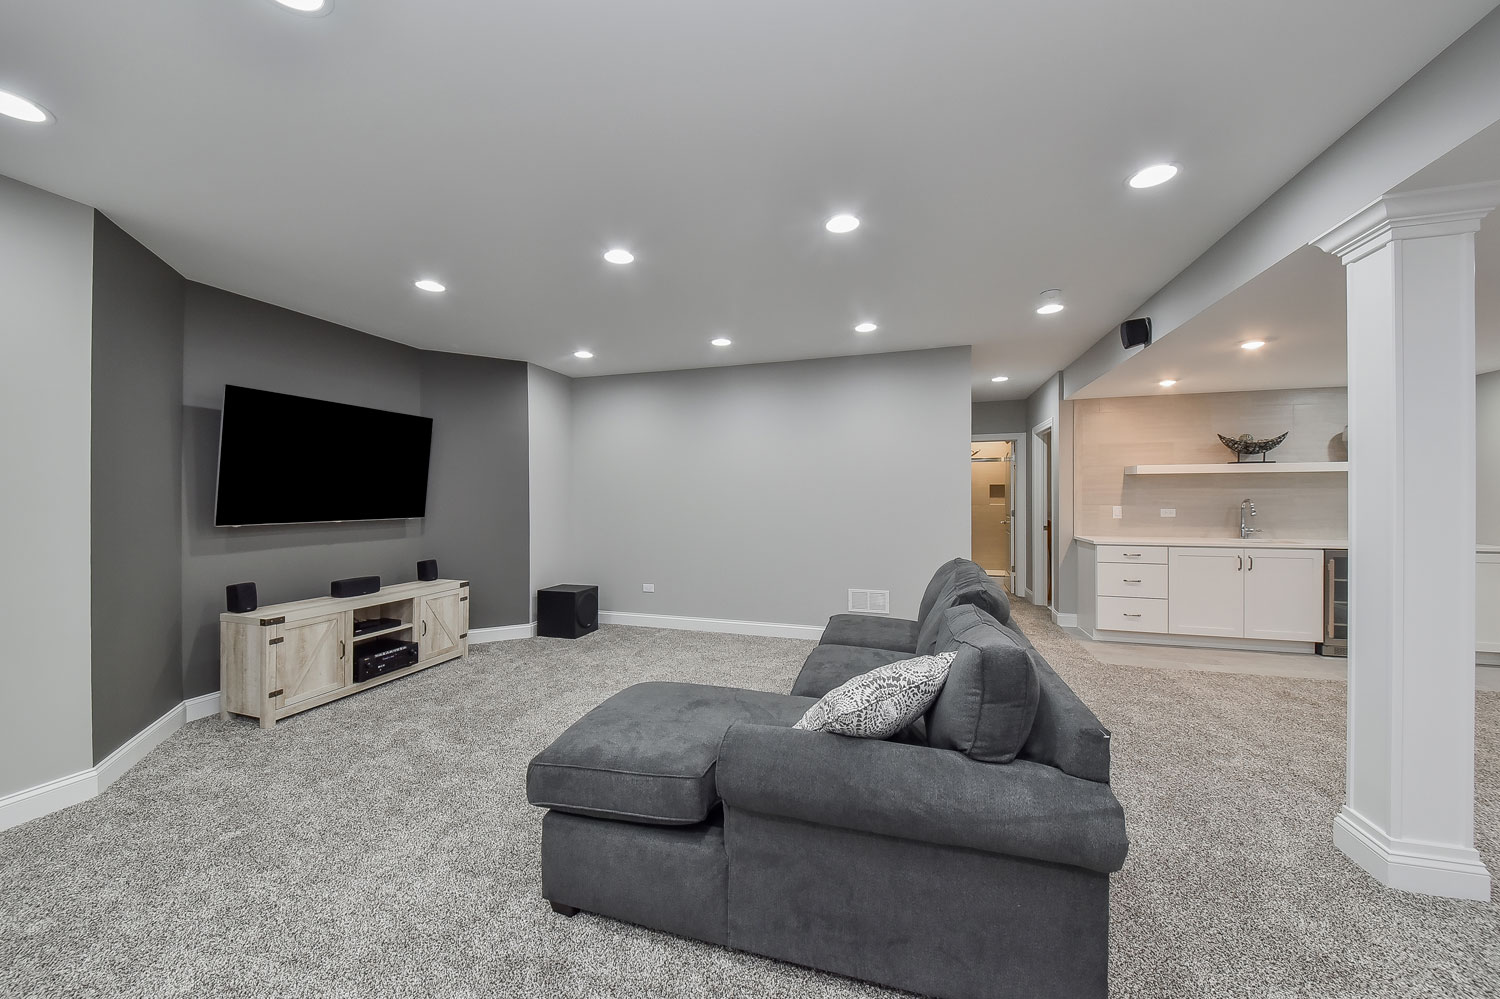 Downers Grove Basement Finishing Project, Grey Walls, Grey Carpet, White Wet Bar - Sebring Design Build